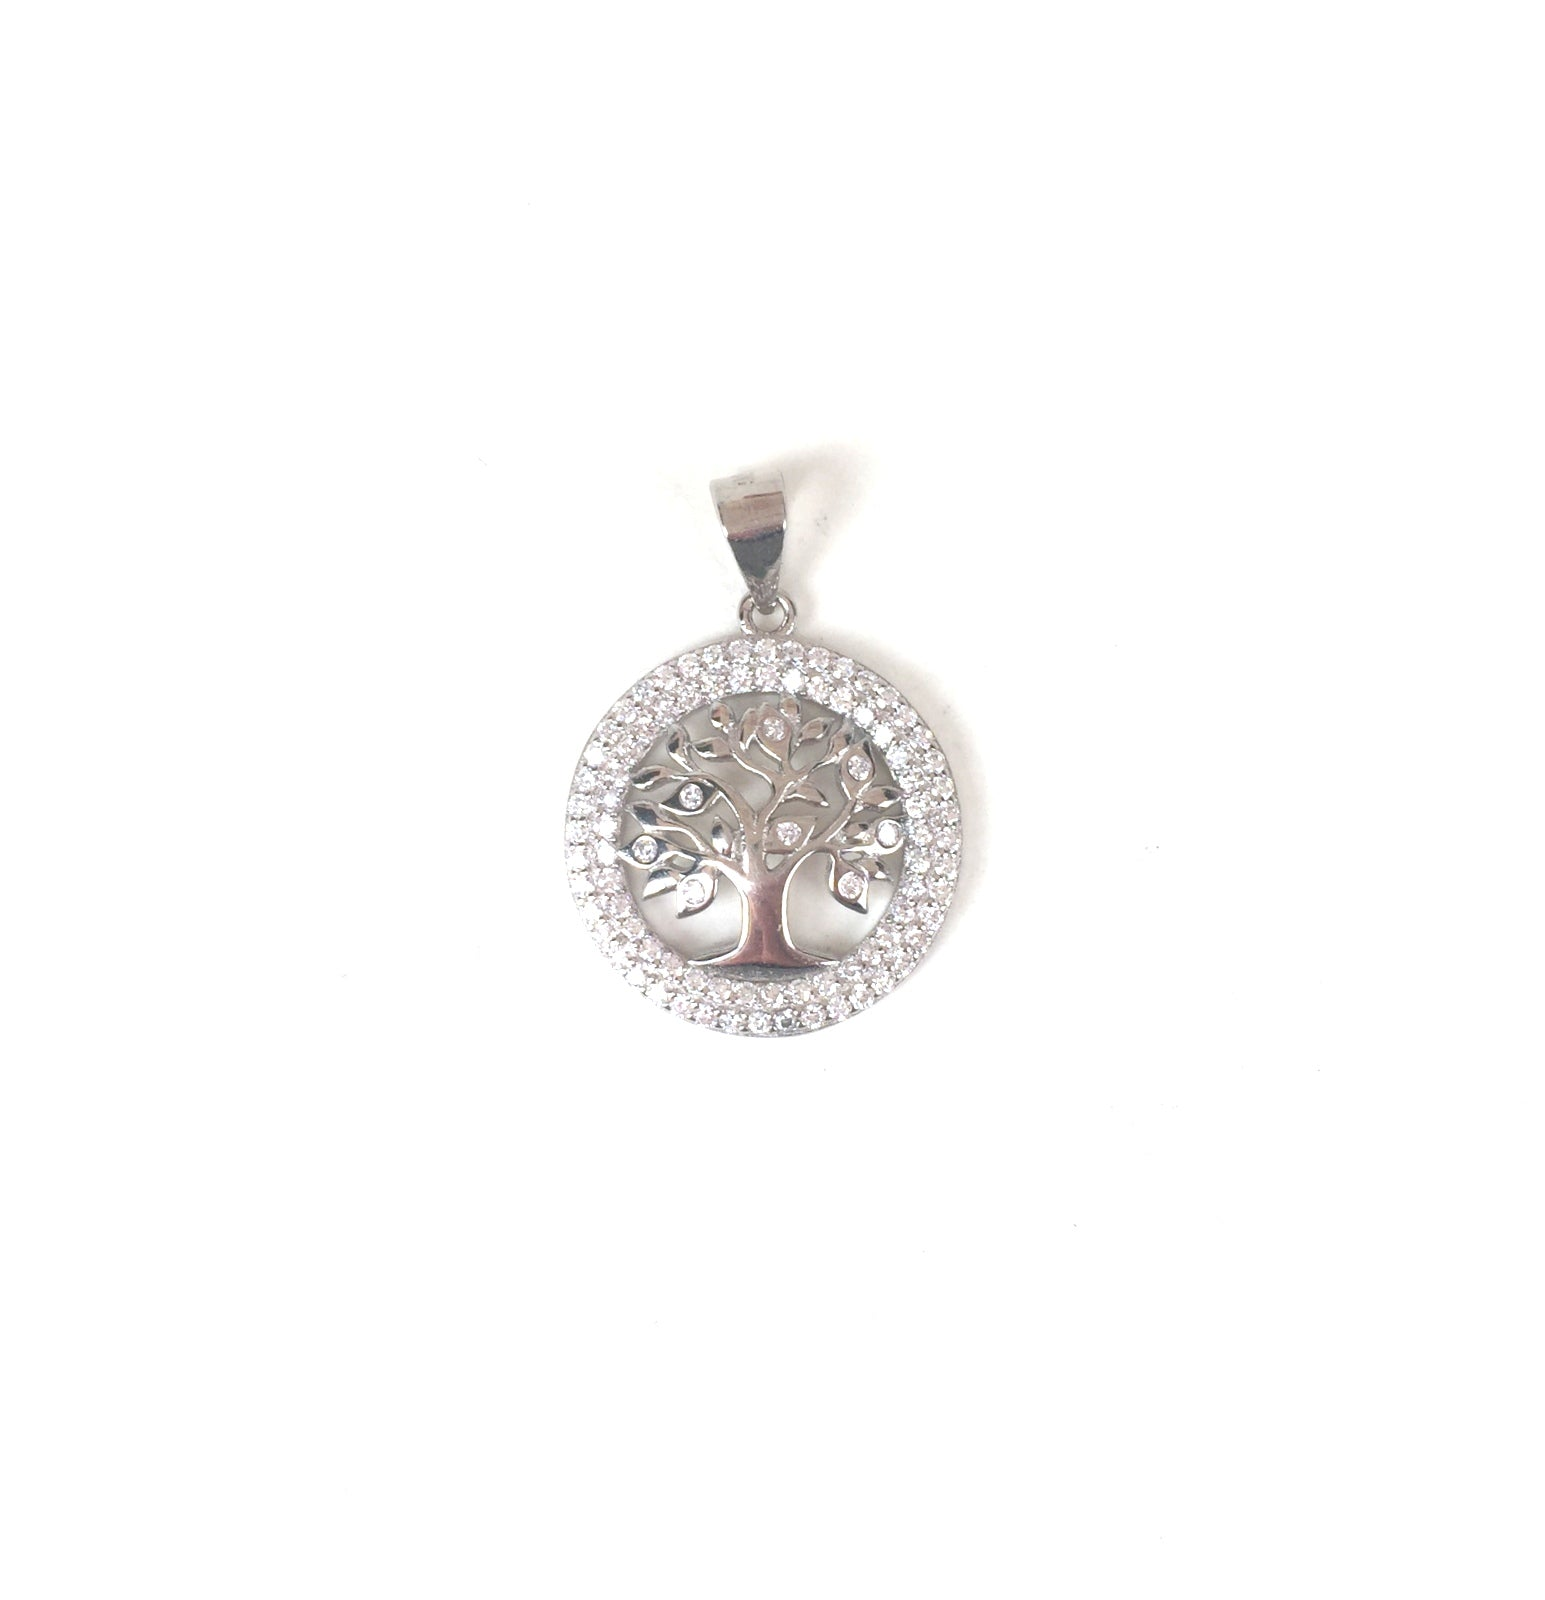 SPARKLING TREE OF LIFE PAVE CZ STERLING SILVER PENDANT